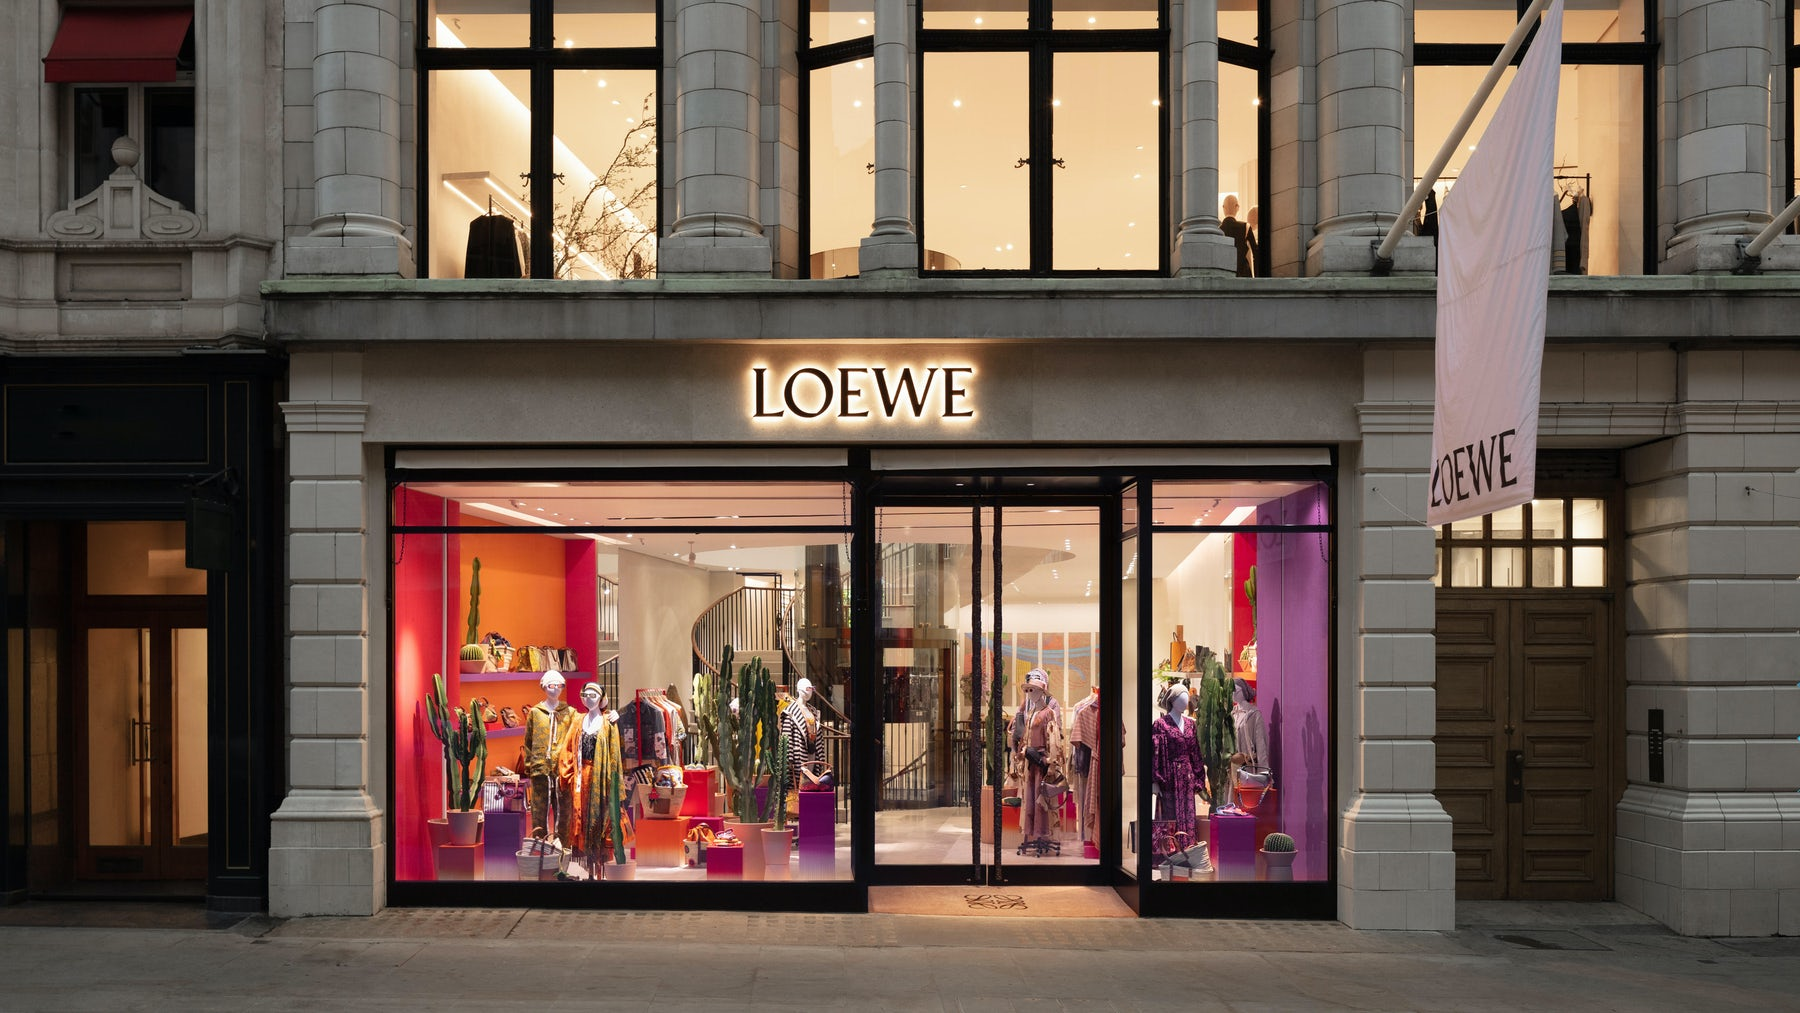 The new Loewe store on Bond Street | Source: Courtesy